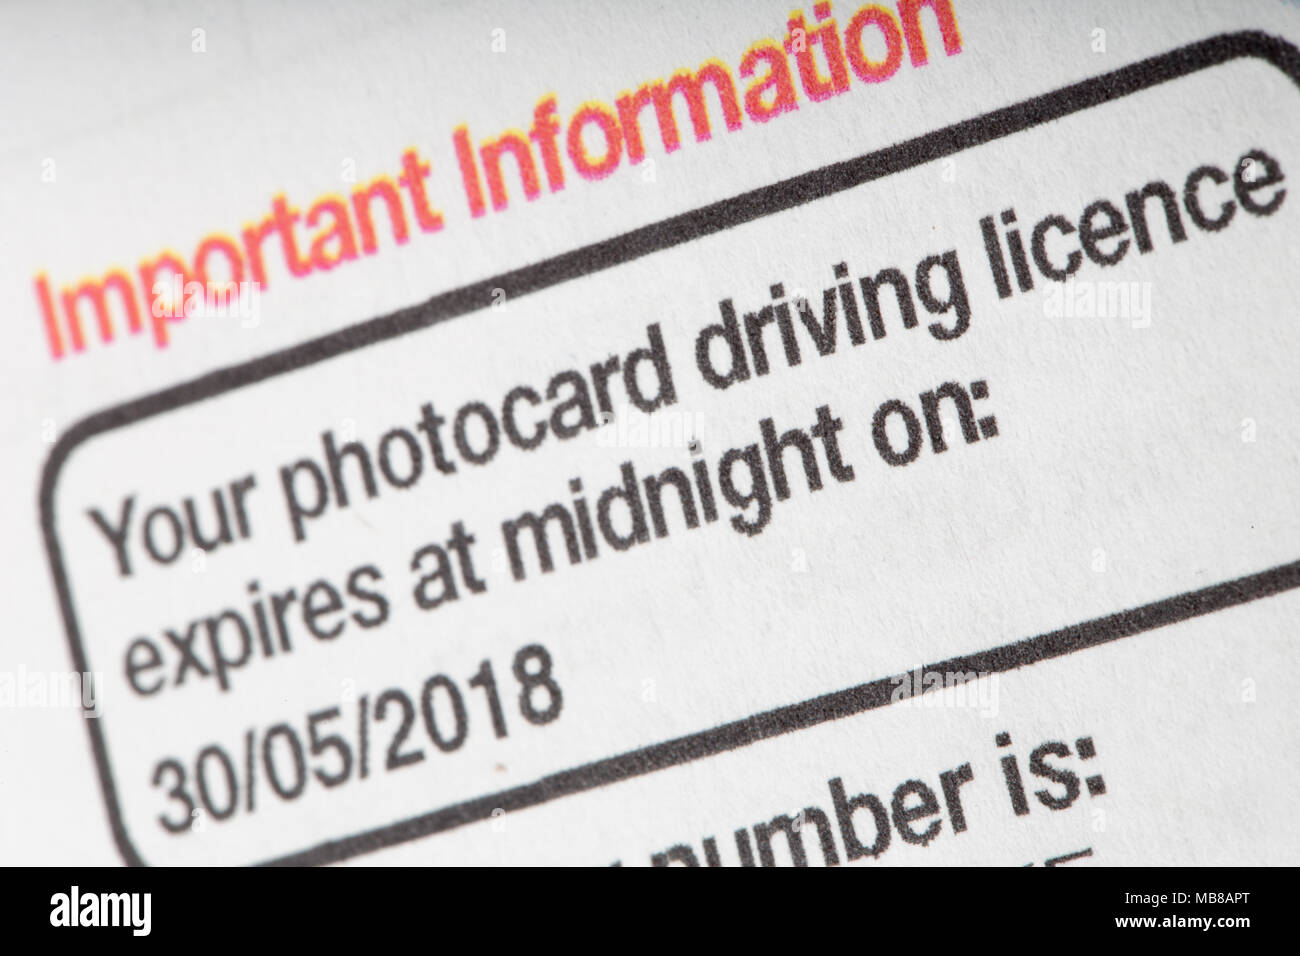 Reminder notice from the DVLA to renew a photocard driving licence. UK - Stock Image